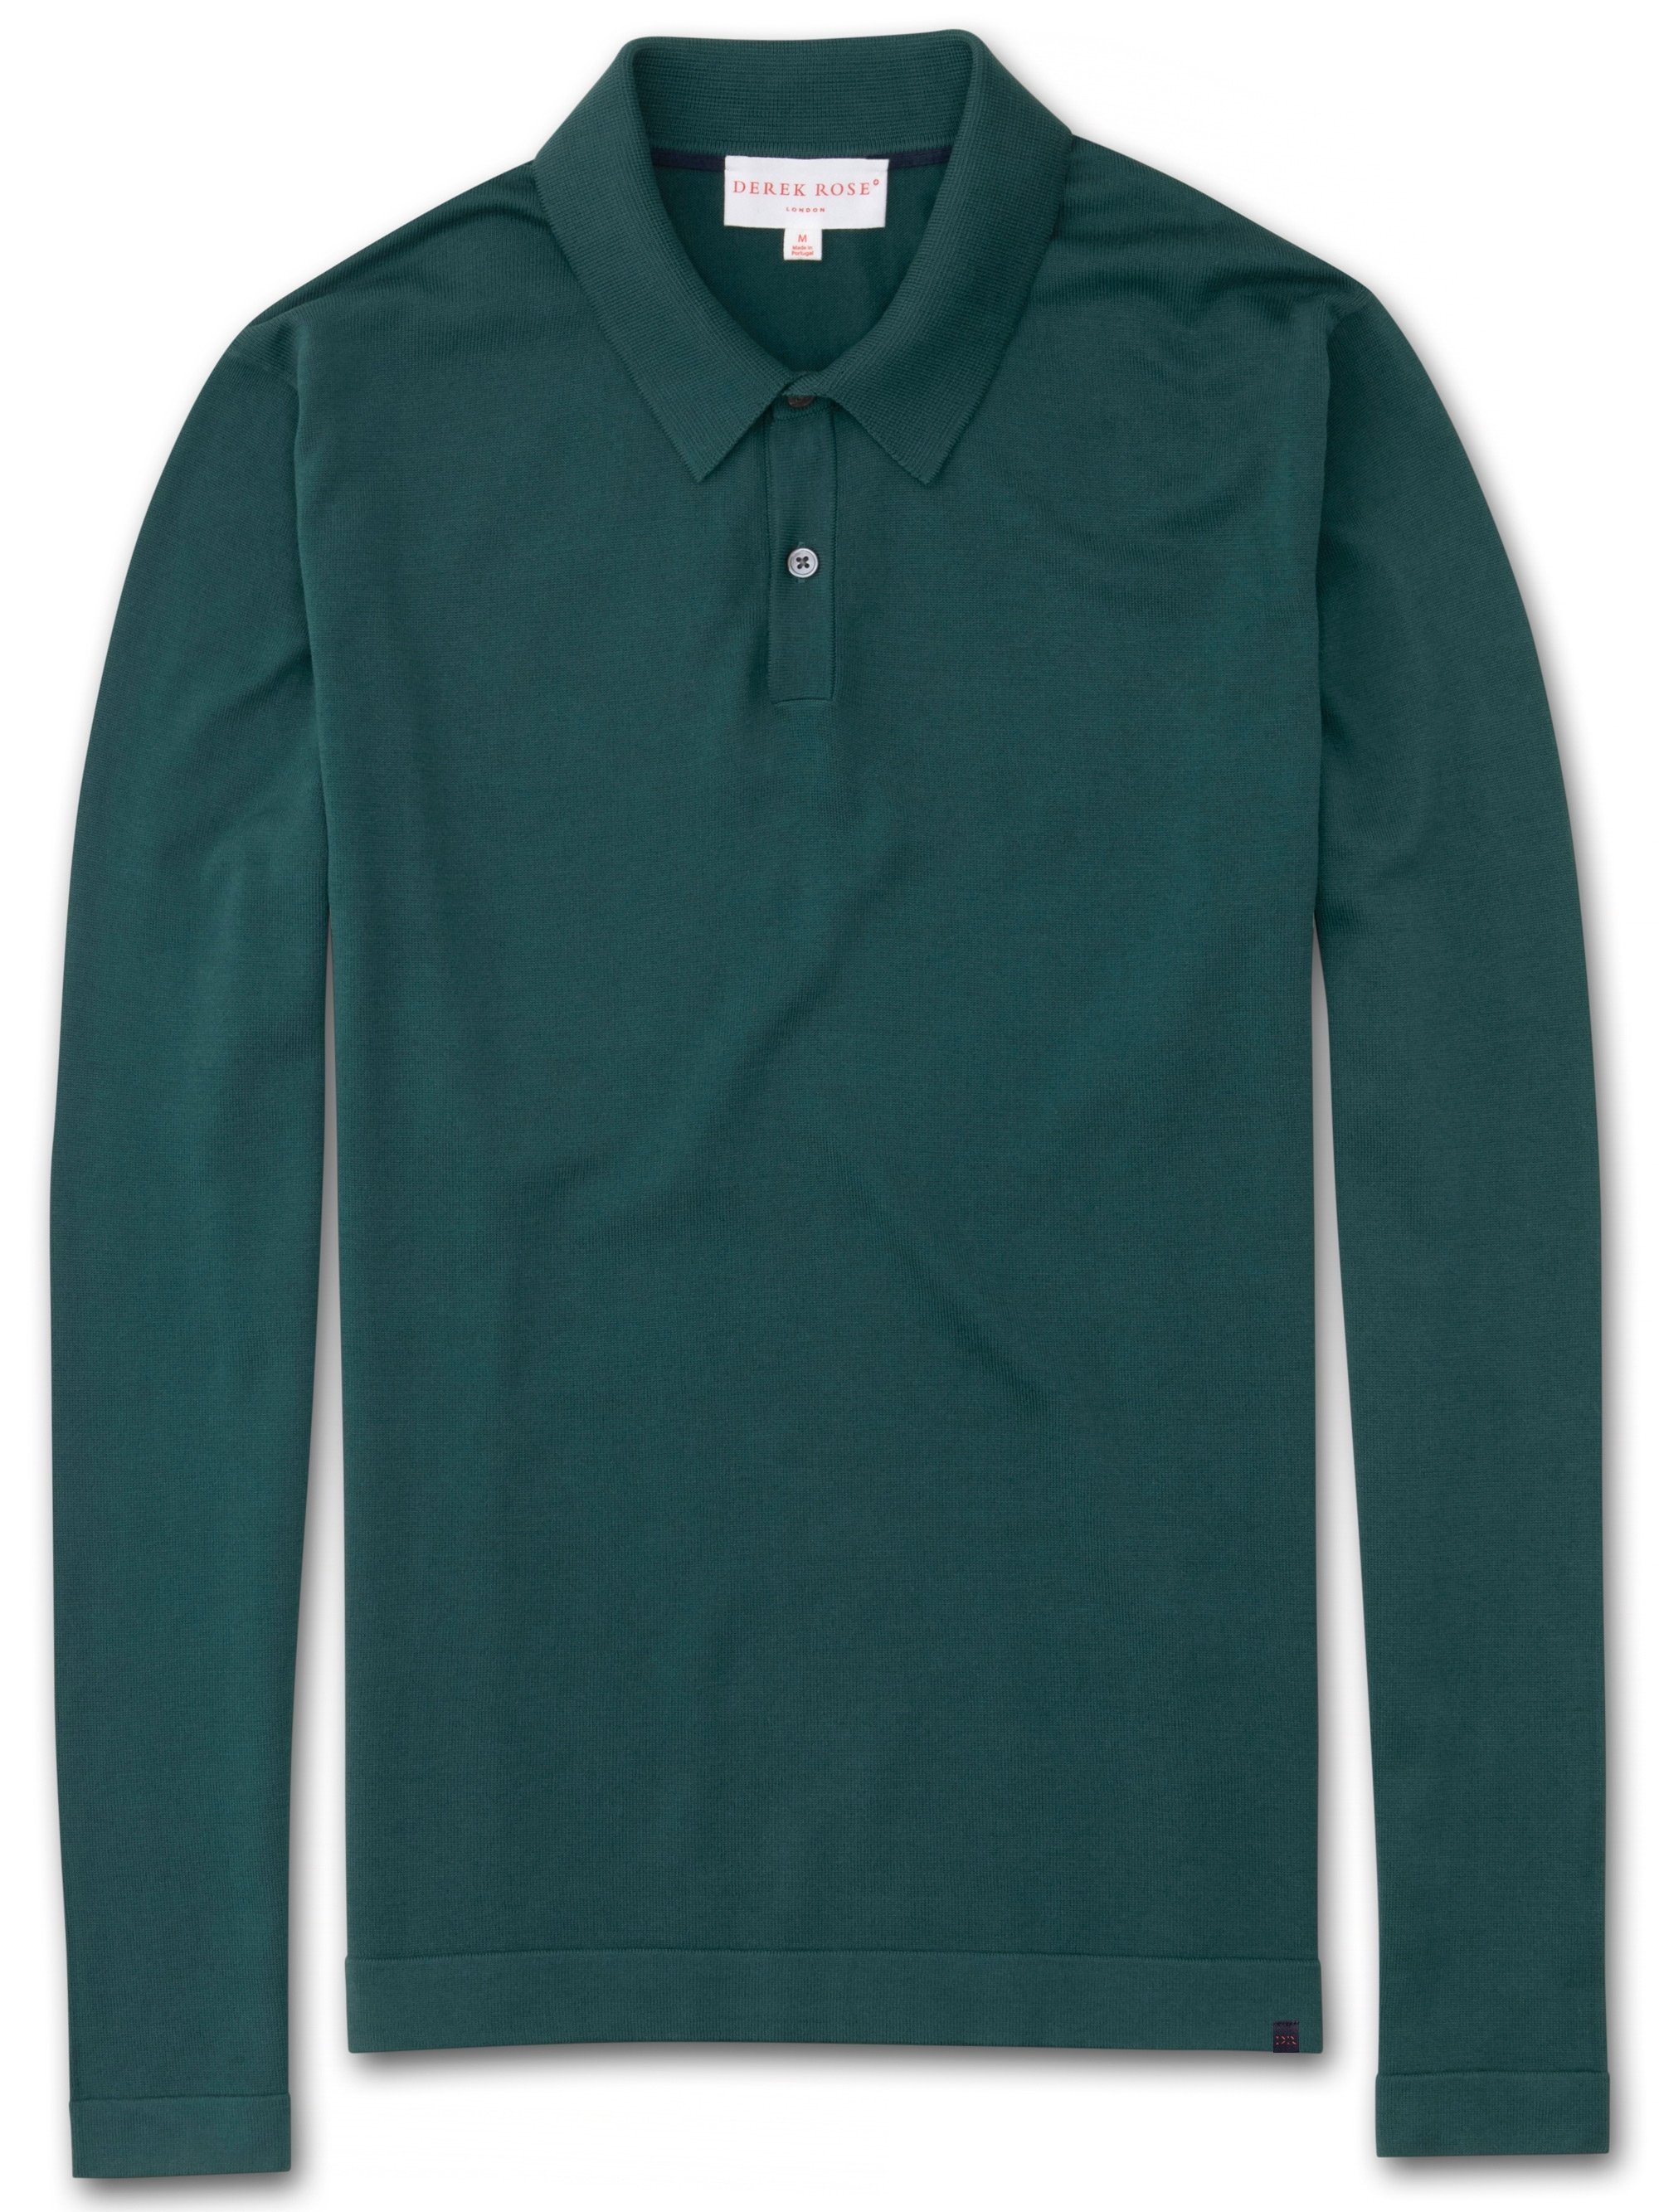 Men's Long Sleeve Polo Shirt Jacob Sea Island Cotton Green